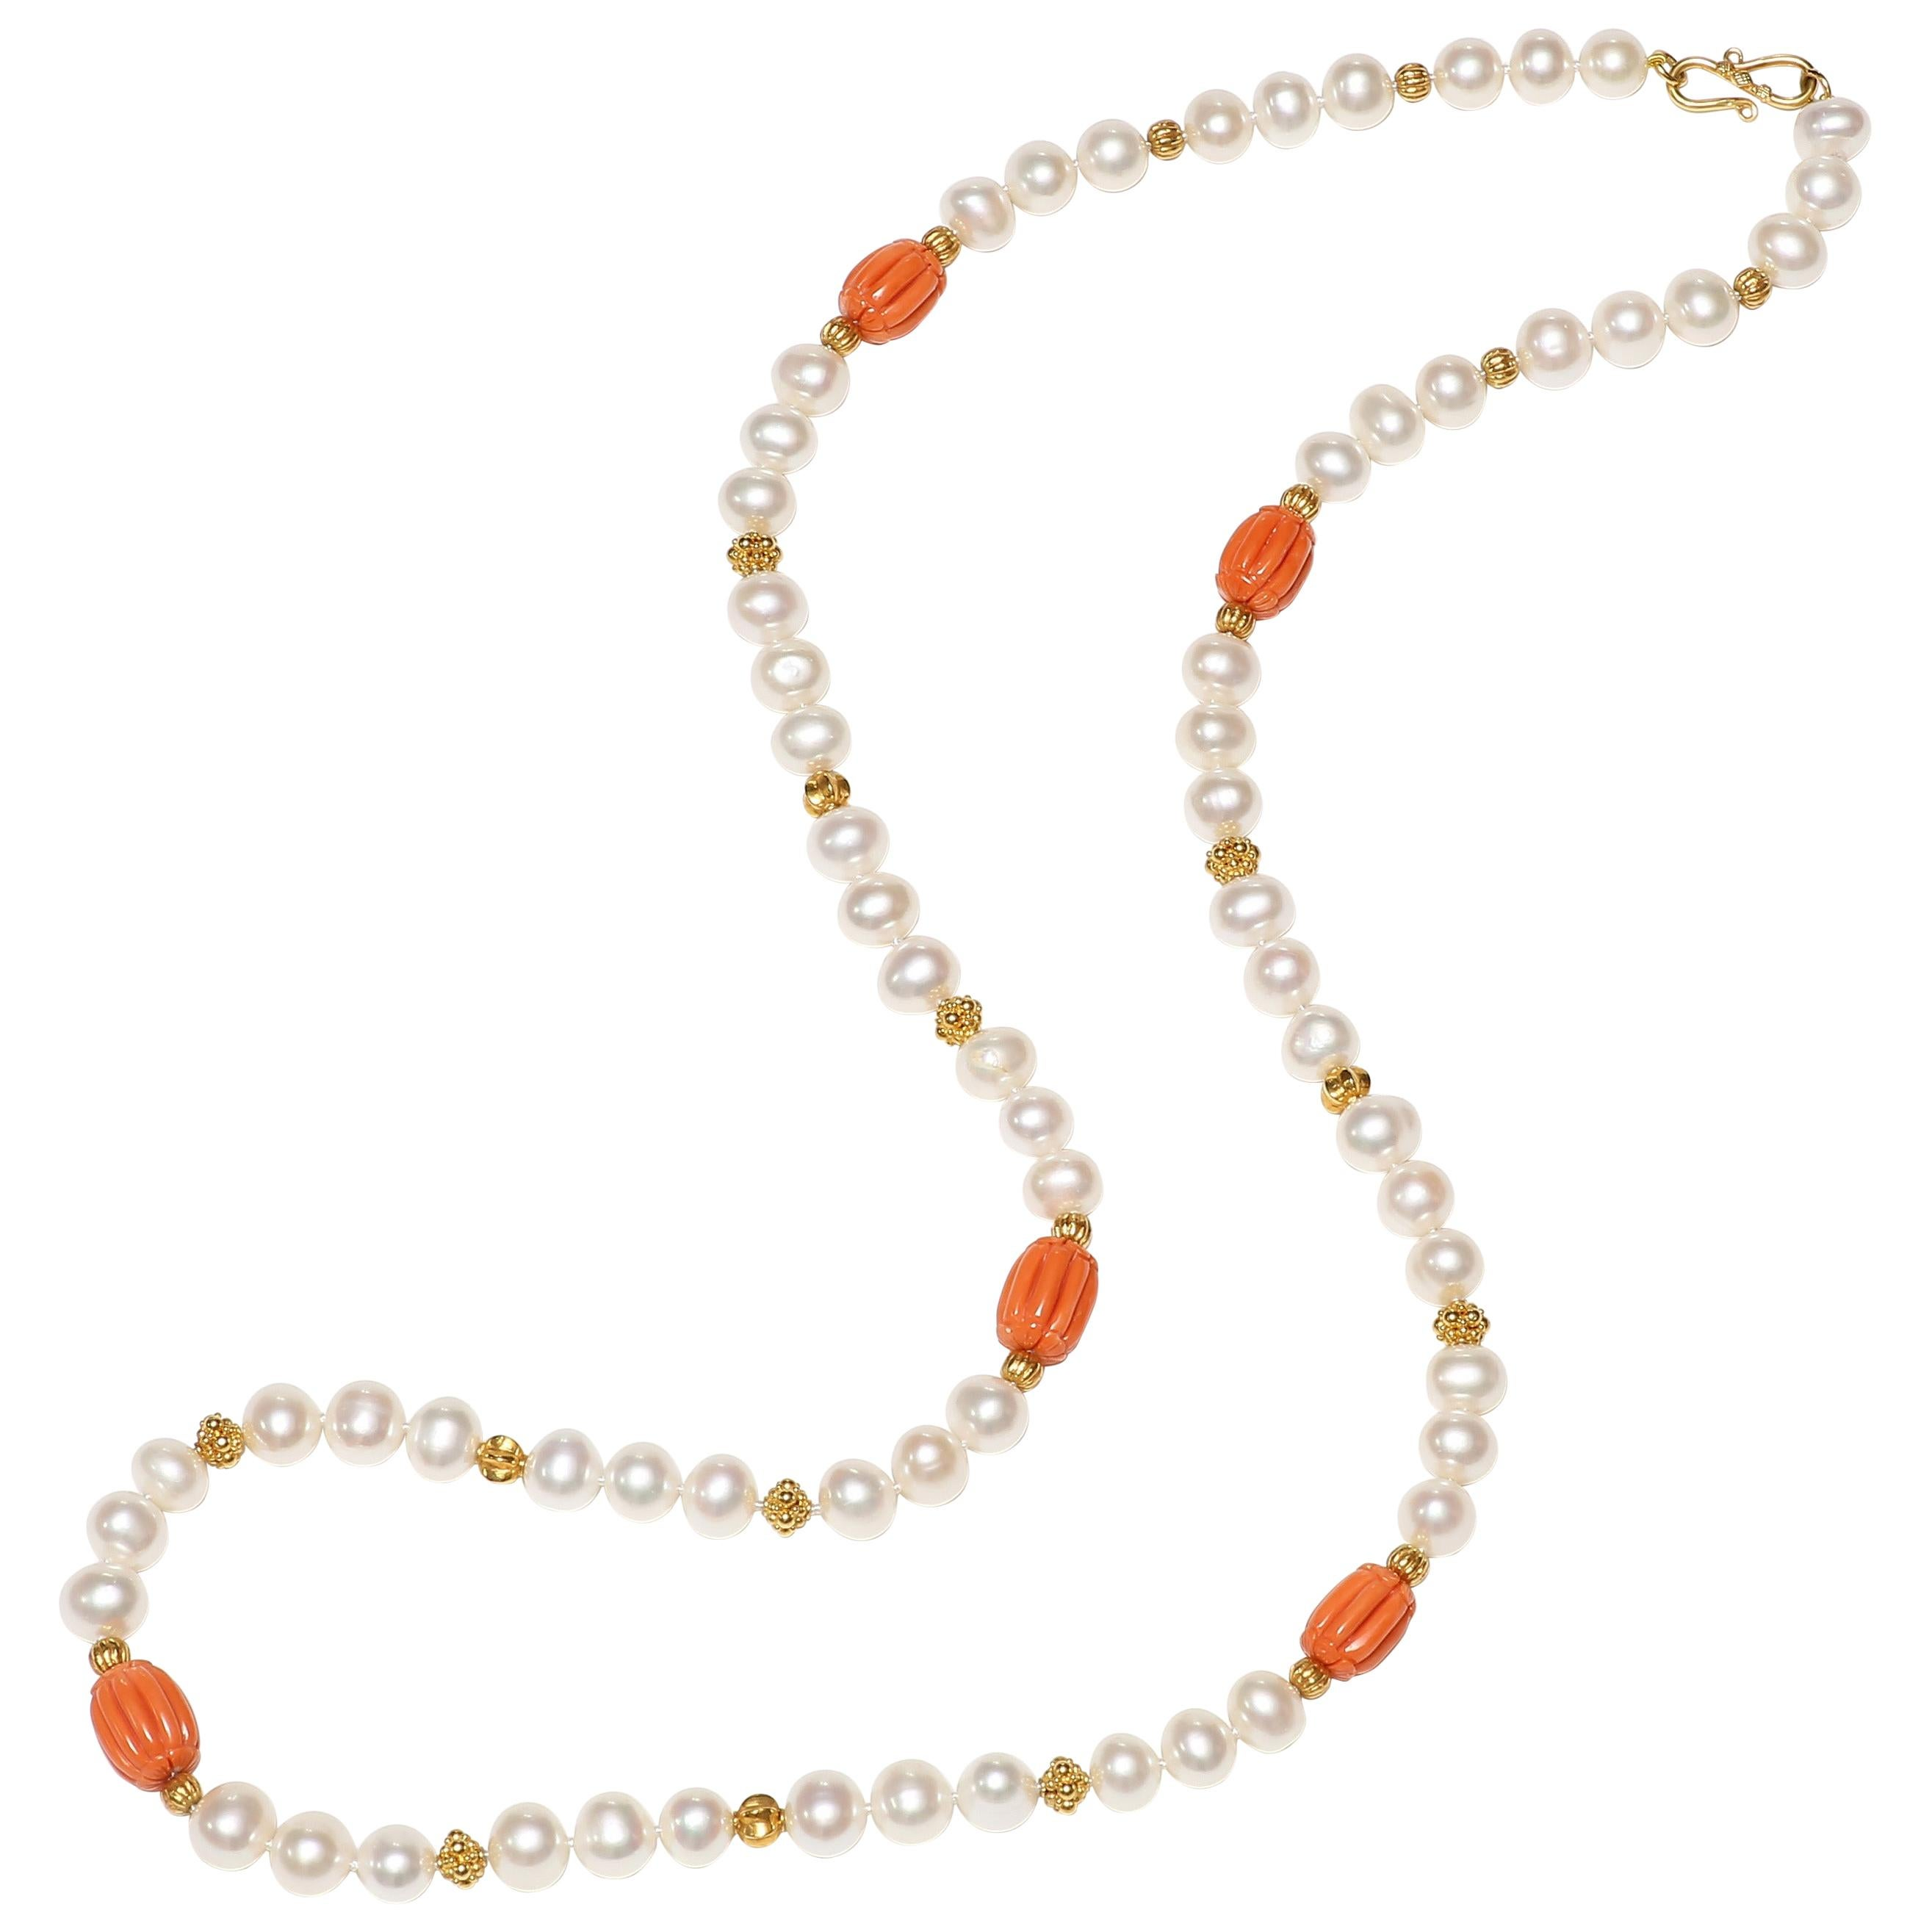 Coral, Freshwater Pearl and Gold Necklace